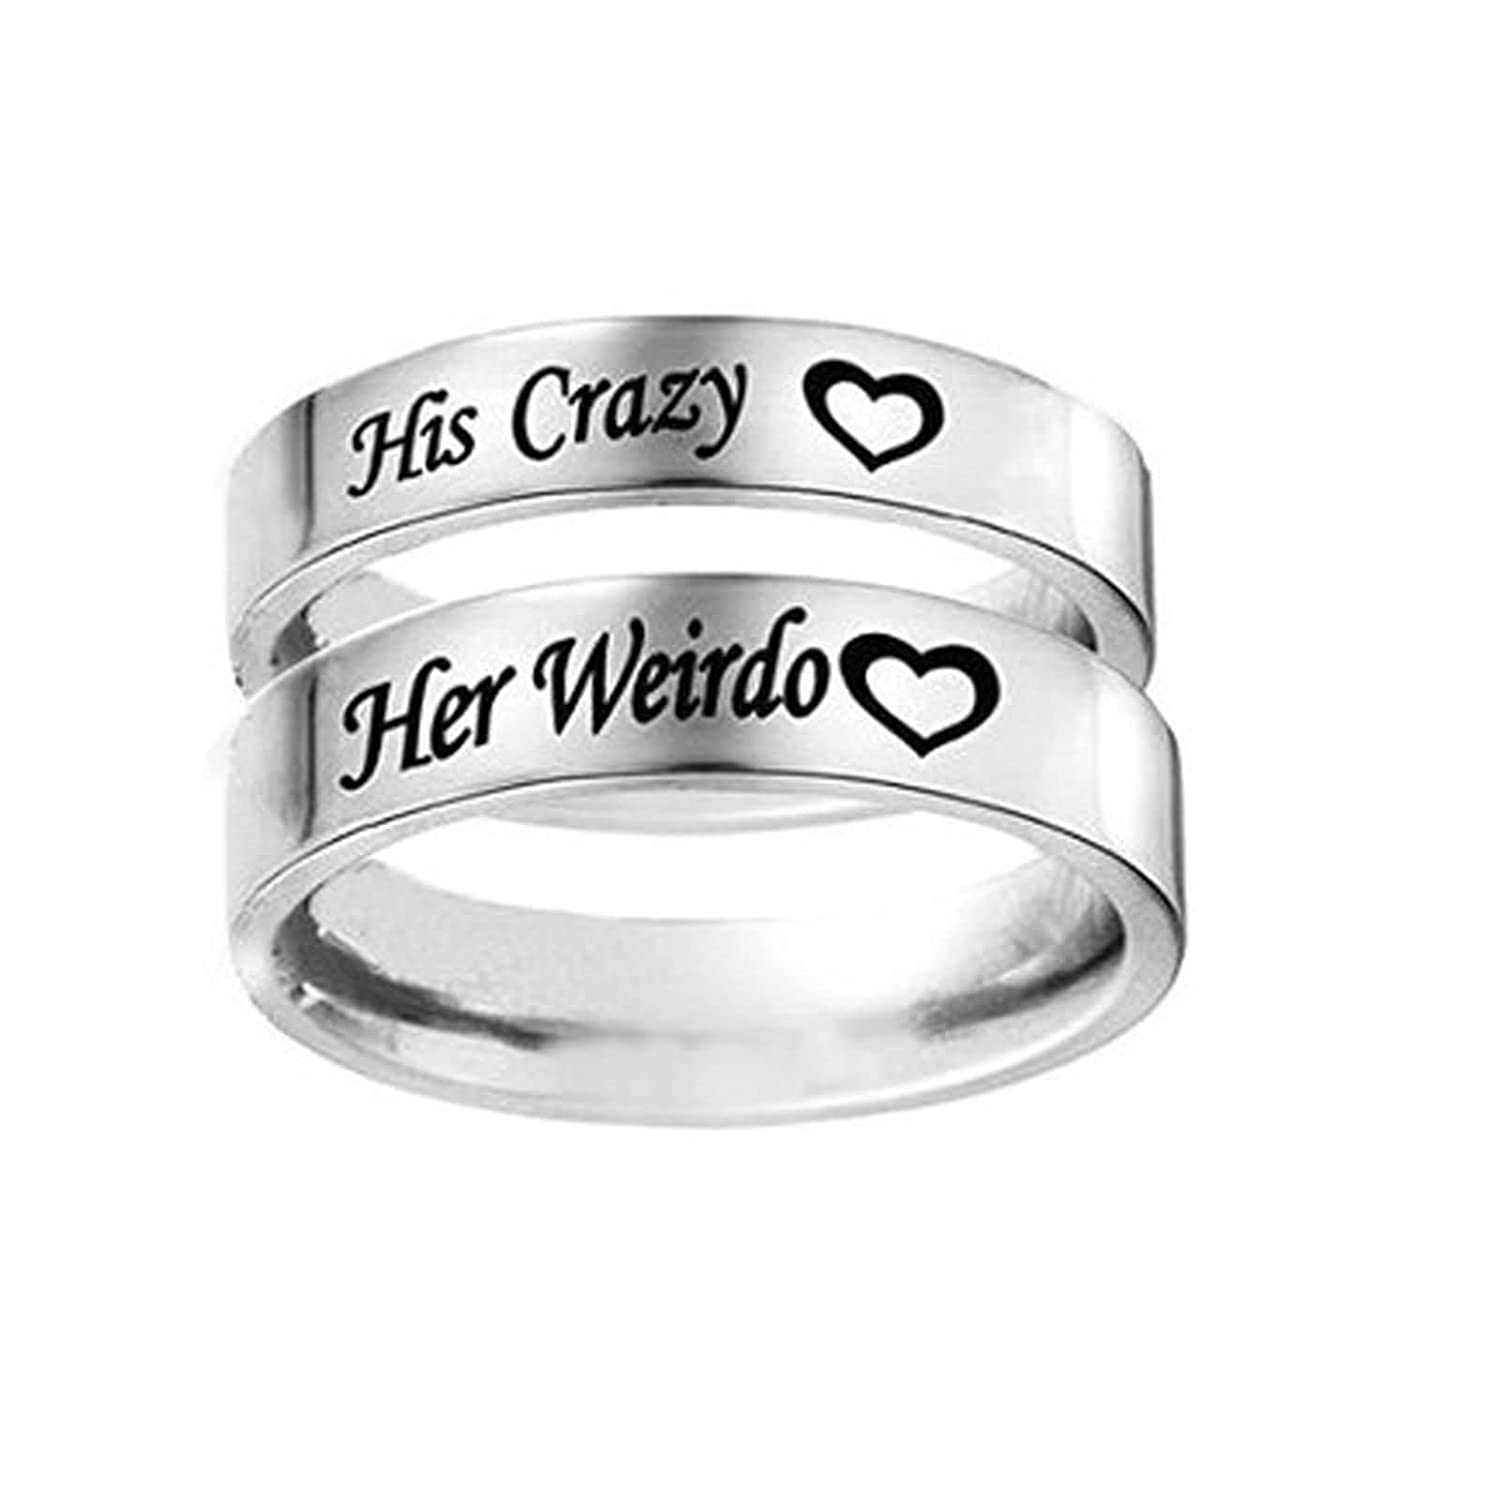 da35f30eb0 Bishilin 2 Pieces Couple Rings Stainless Steel High Gloss Polished with Engraving  Her Weirdo His Crazy Width 6MM Wedding Engagement Silver Women Size 10 ...